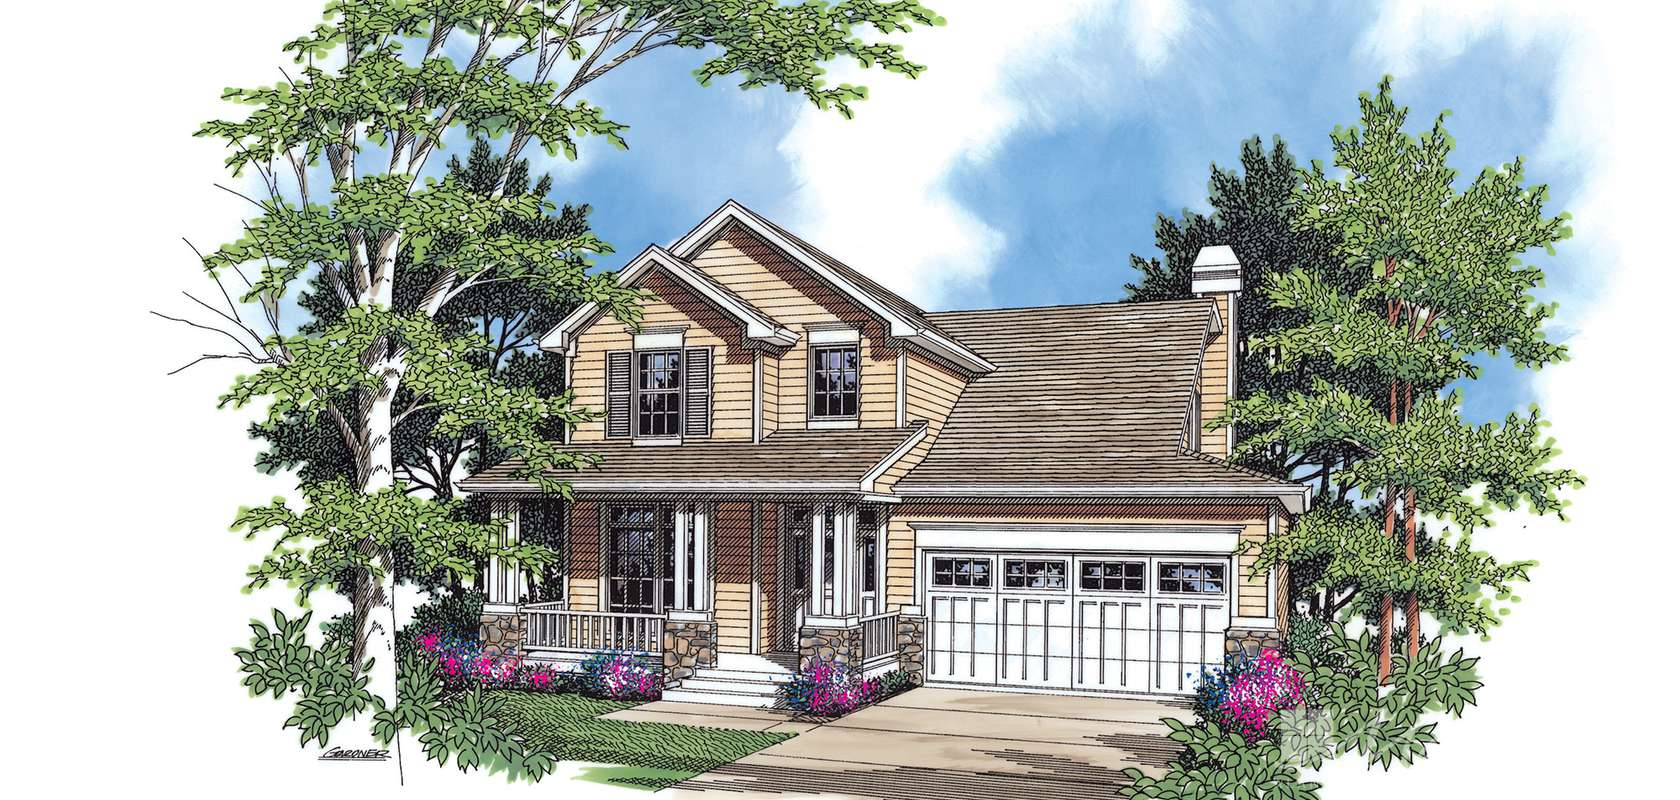 Mascord House Plan 2152C: The Clarkston